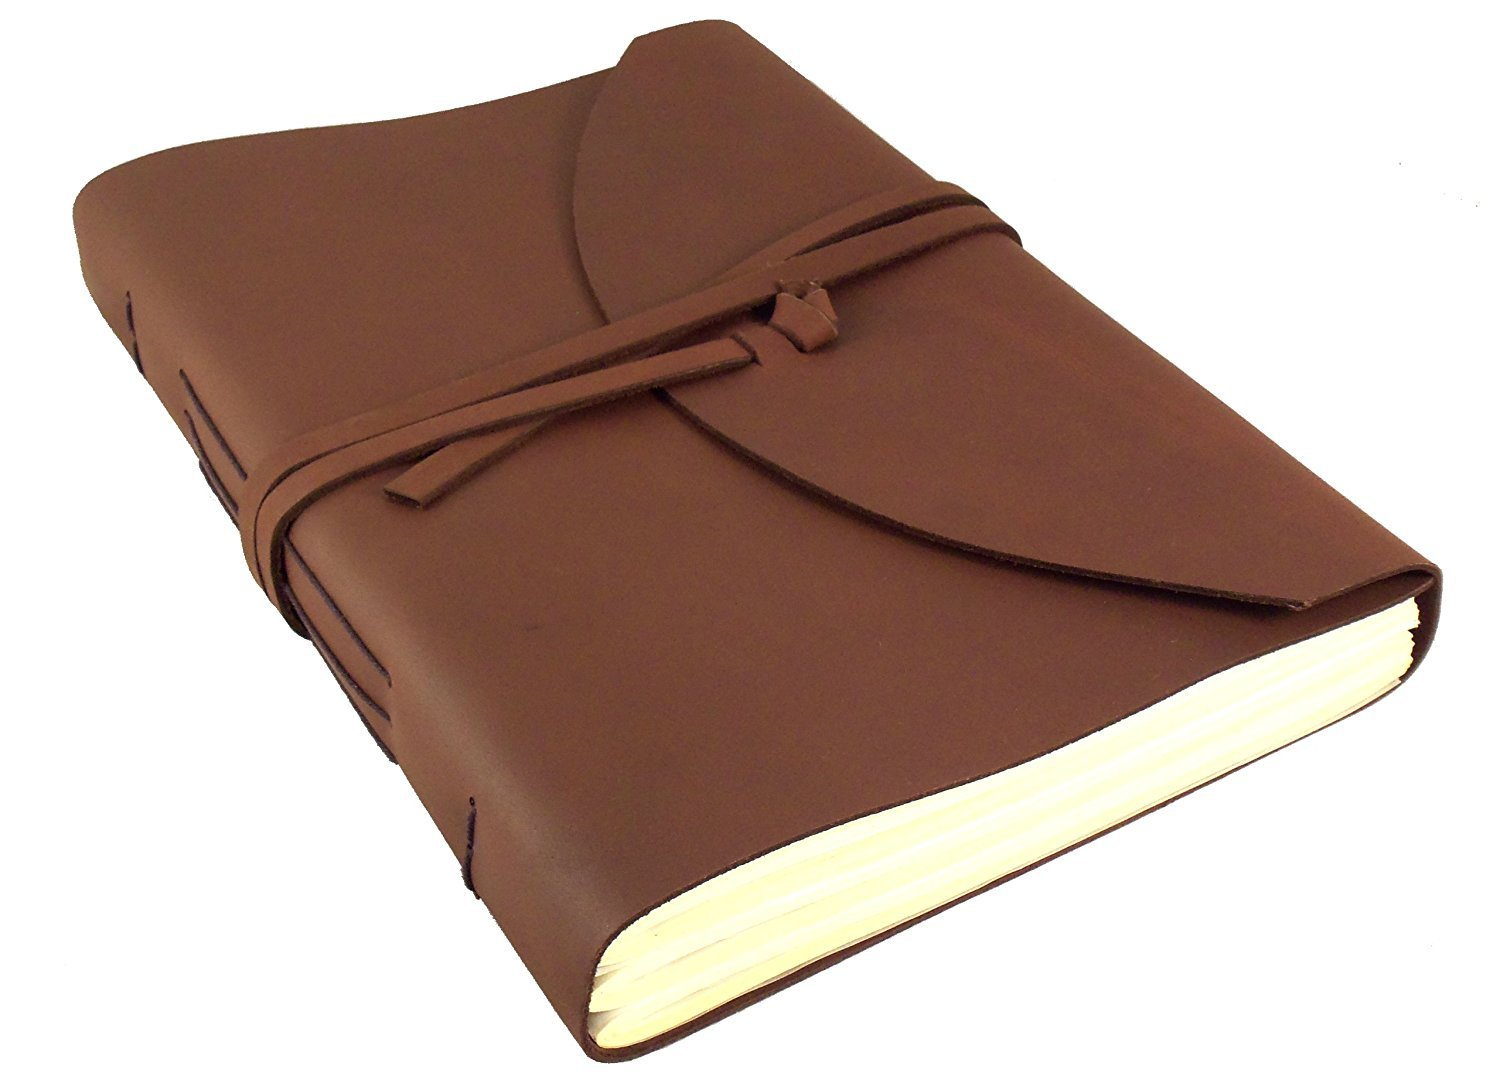 """Large Genuine Leather Legacy Journal / Sketchbook with Gift Box - 380 Pages - 9"""" x 12"""" - Rich Dark Brown"""